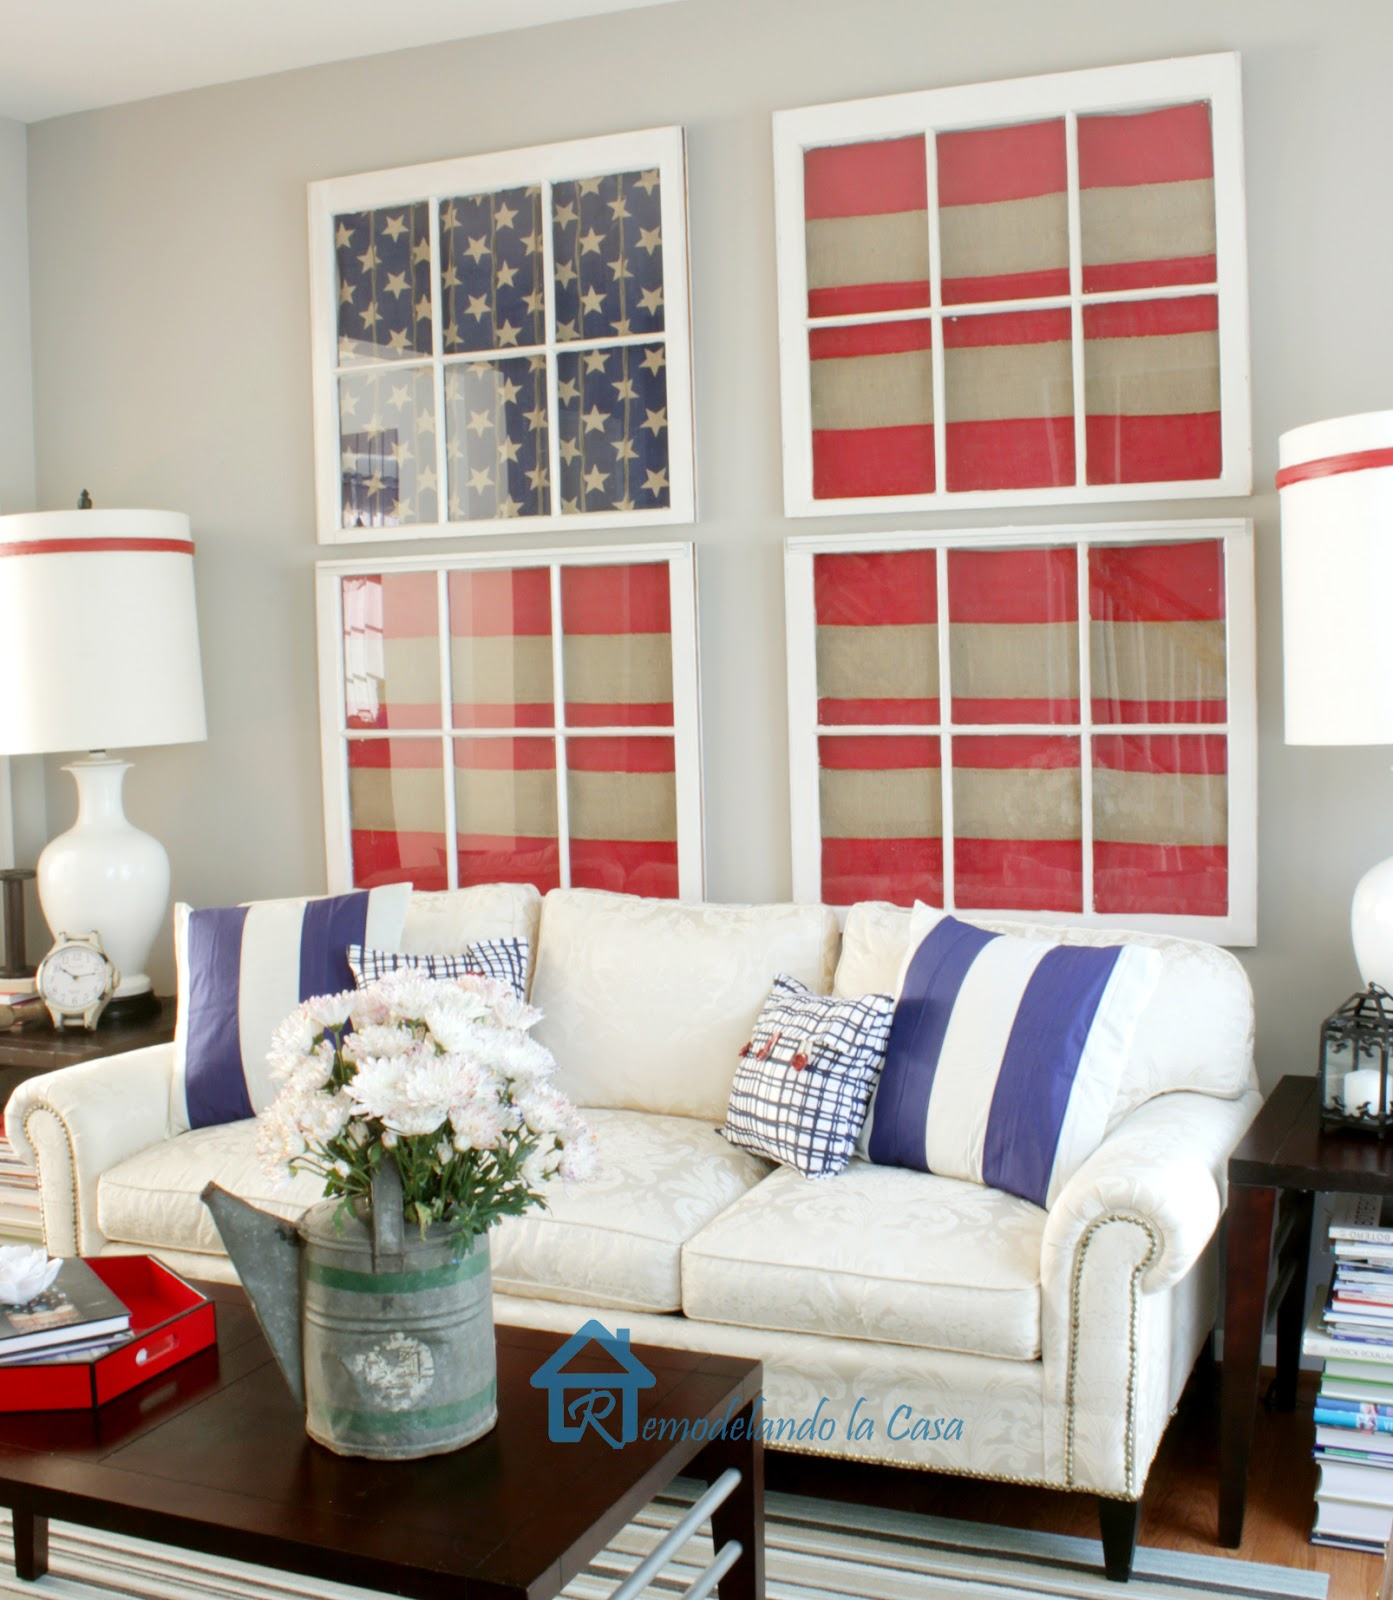 Remodelando La Casa Red White And Blue Living Room